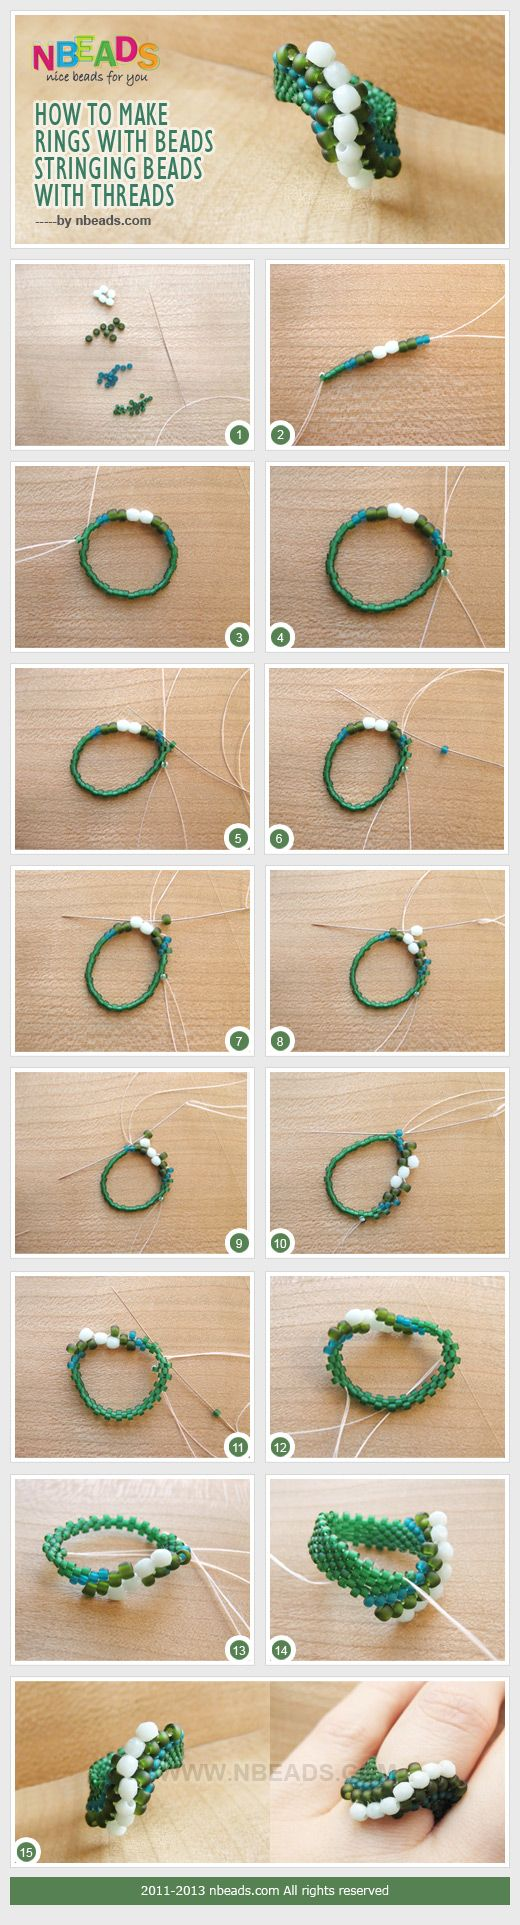 How to Make Rings with Beads-Stringing Beads with Threads #diy